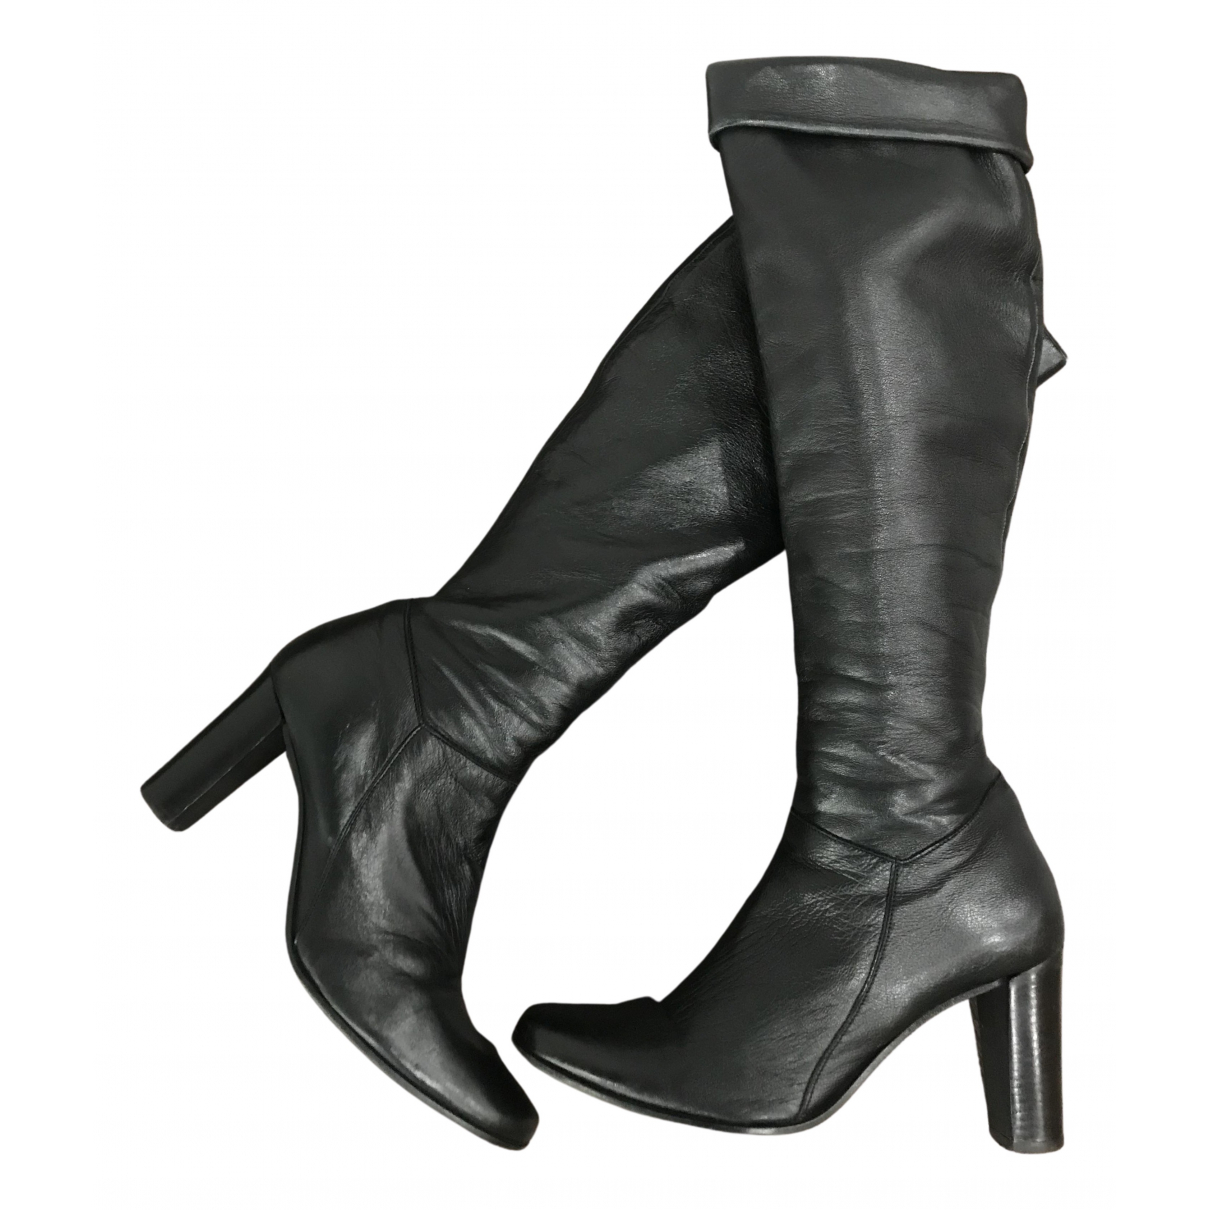 Minelli N Black Leather Boots for Women 40 EU